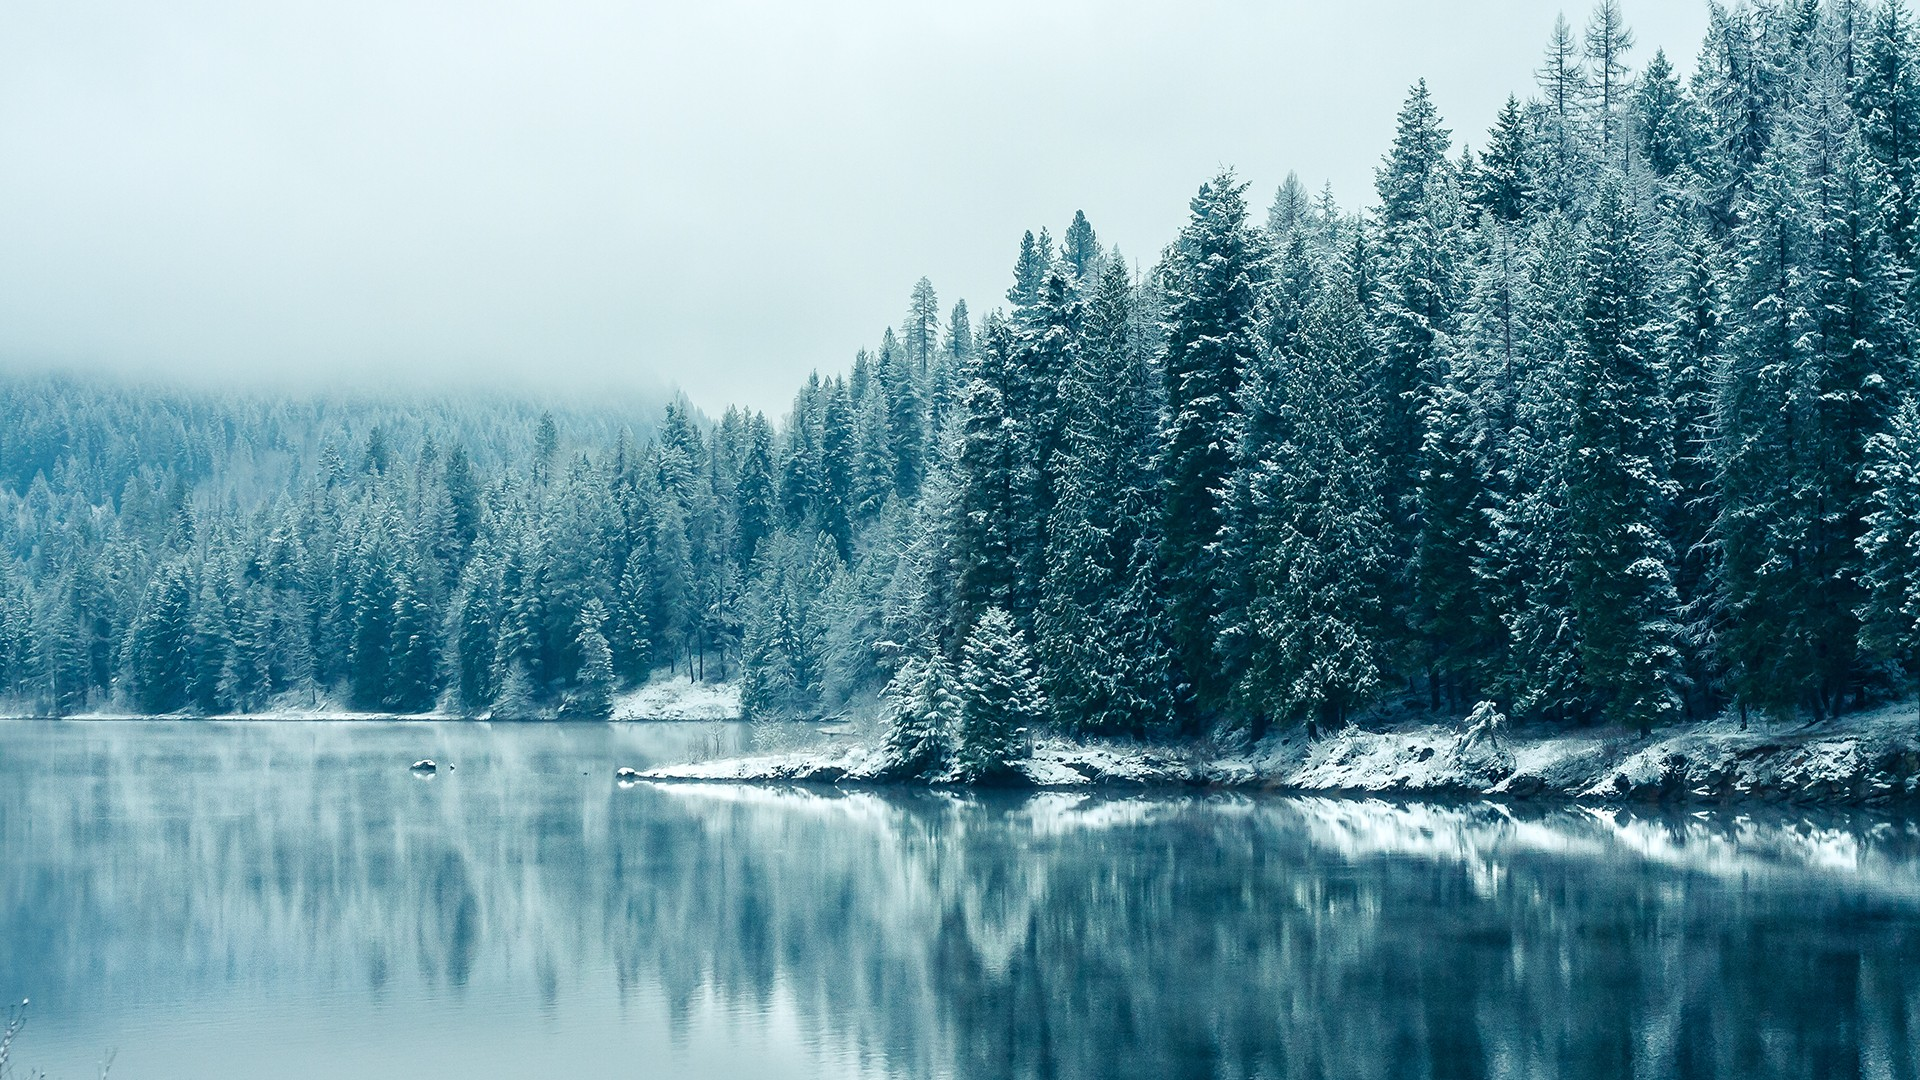 General 1920x1080 snow lake nature depth of field trees winter landscape water reflection turquoise